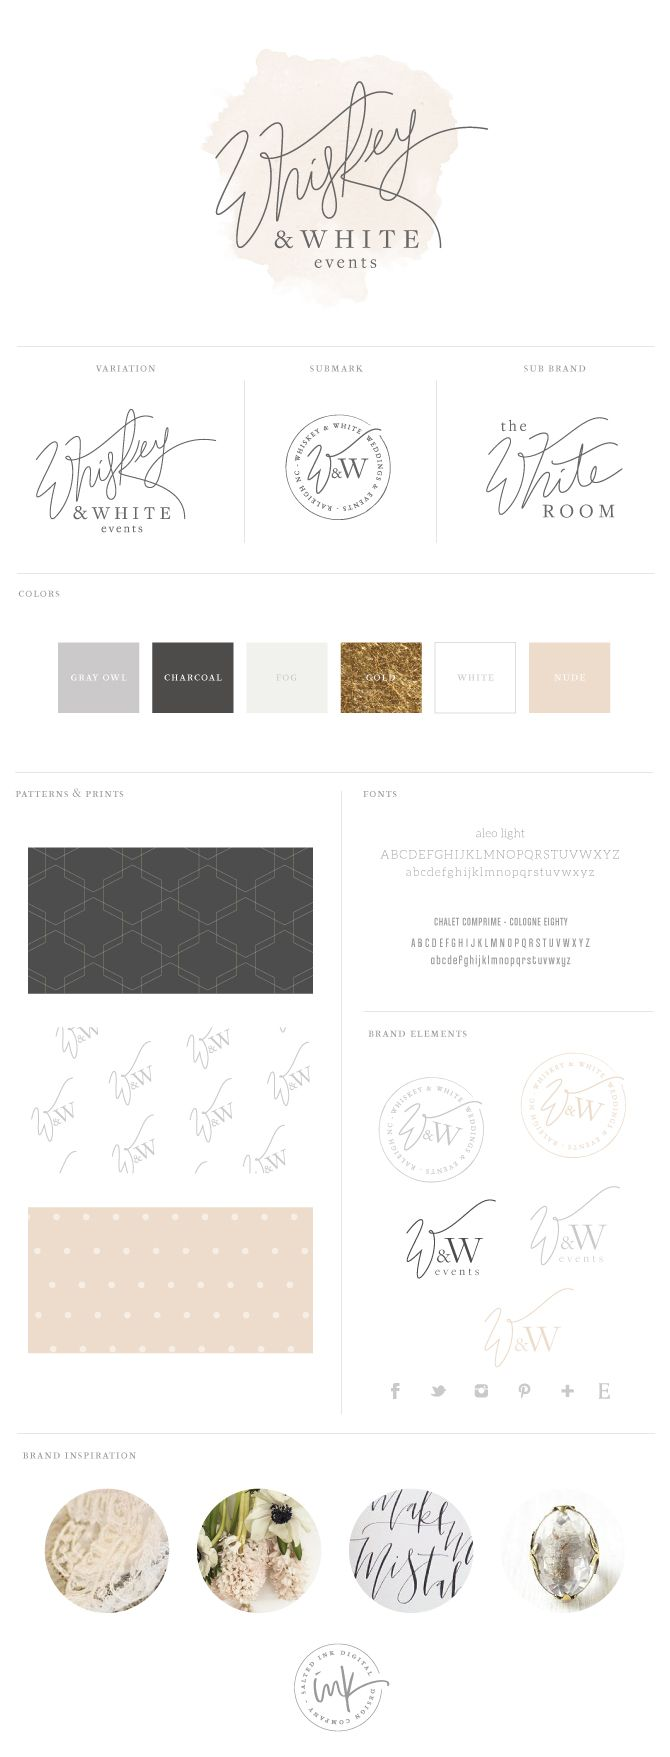 Whiskey U0026 White Events   Wedding Planner Brand And WordPress Website Design  By Salted Ink